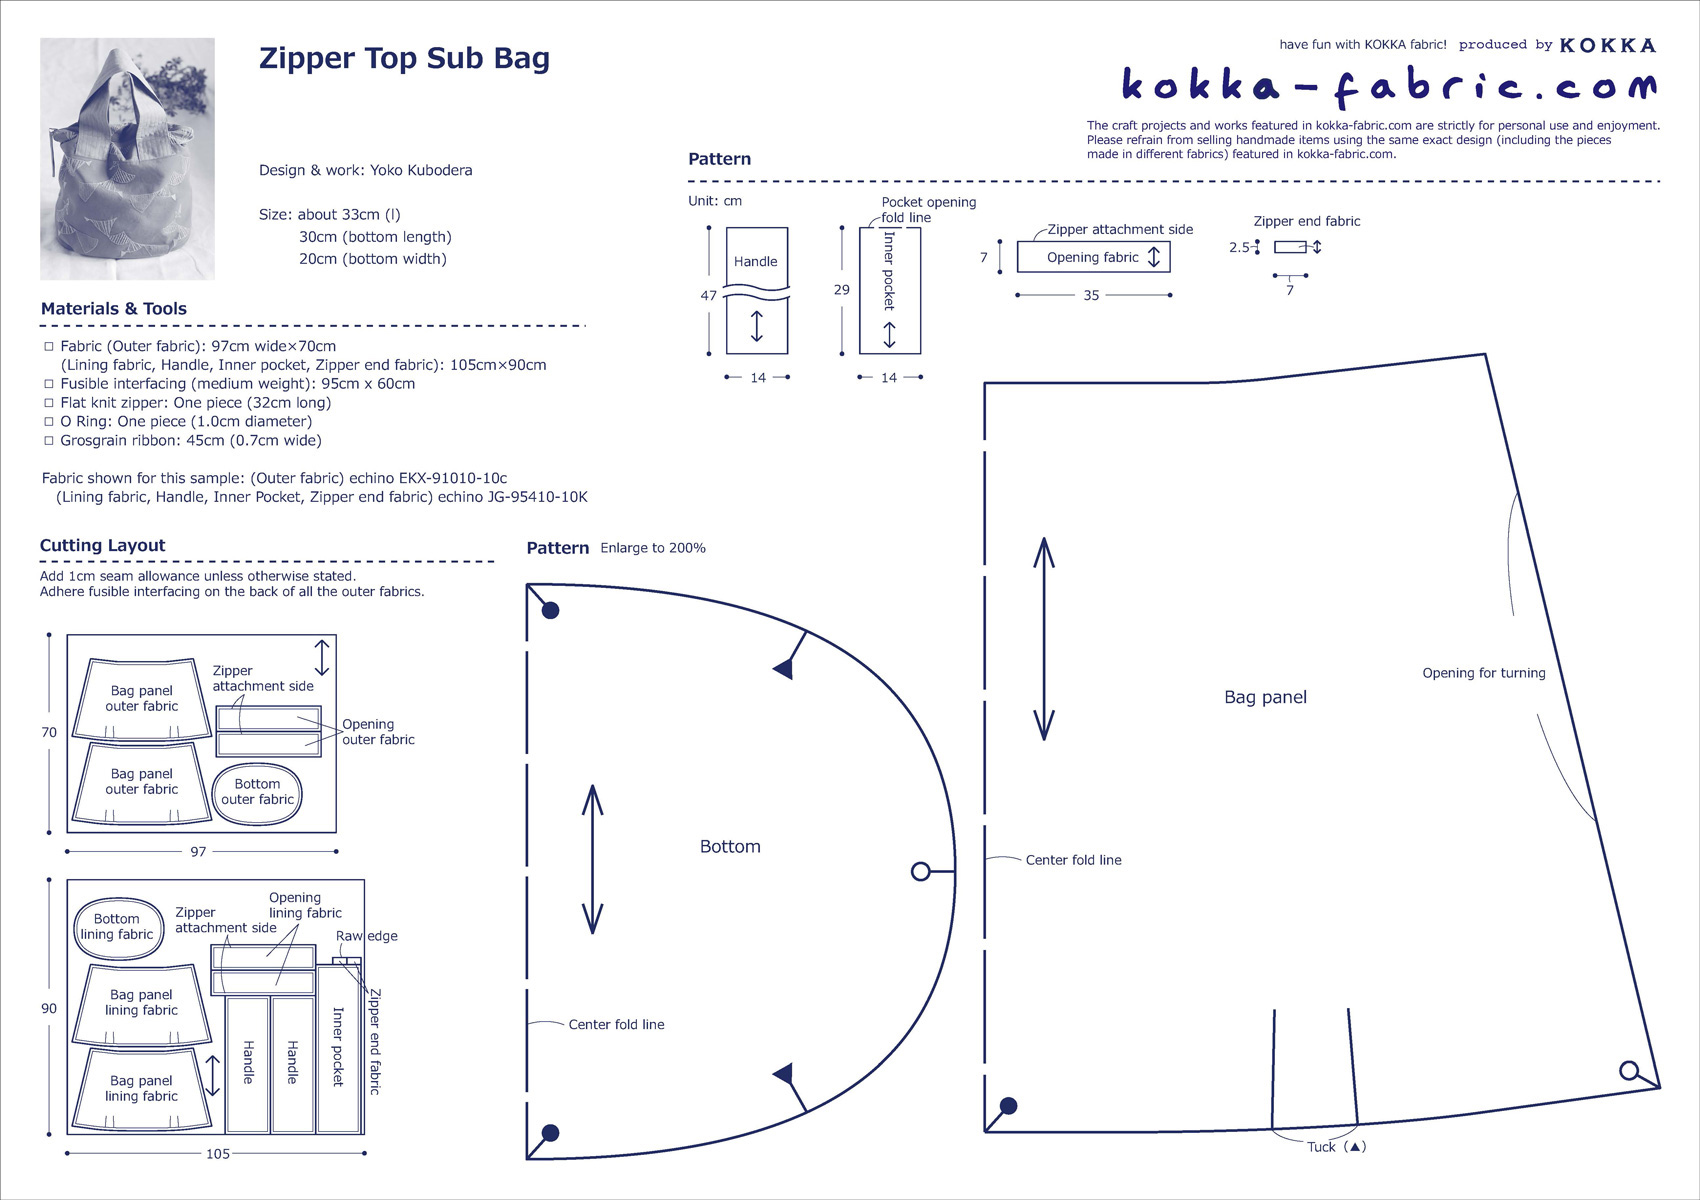 CS305_Zipper-Top-Sub-Bag_fnl_1